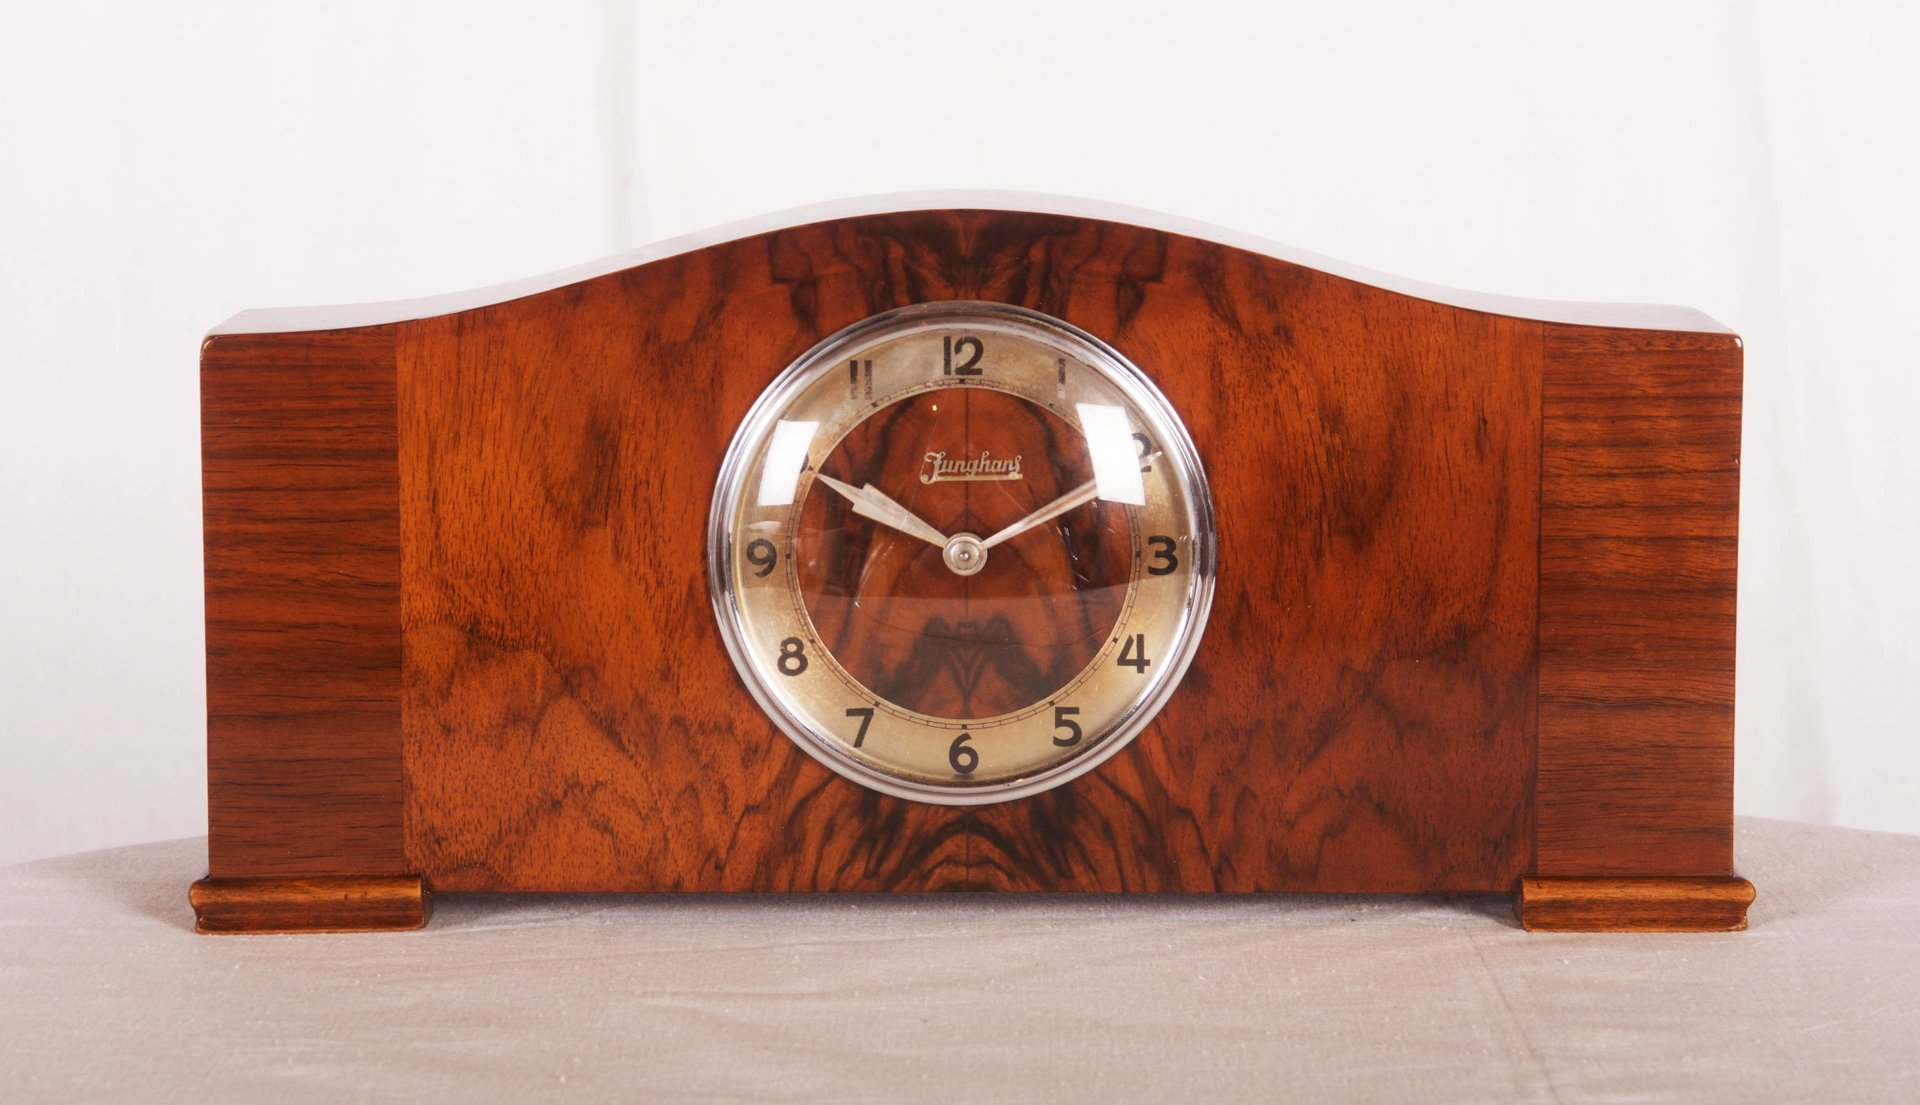 Art deco mantel alarm clock by junghans 1930s for sale at Art deco alarm clocks